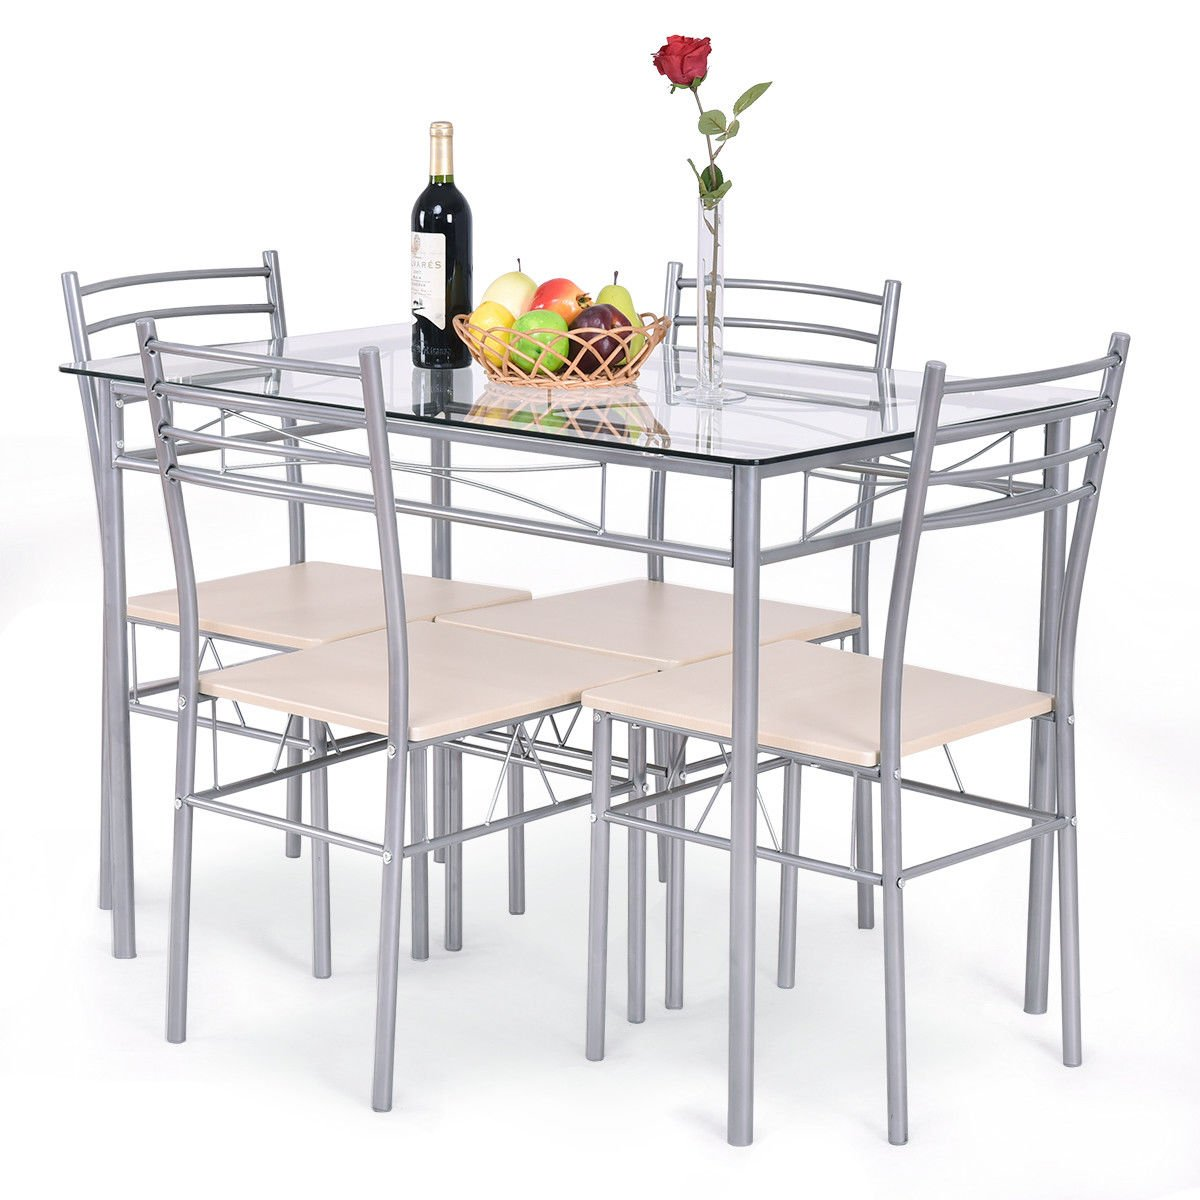 Giantex 5 Piece Dining Set Table and 4 Chairs Glass Top Kitchen Breakfast Furniture HW54039